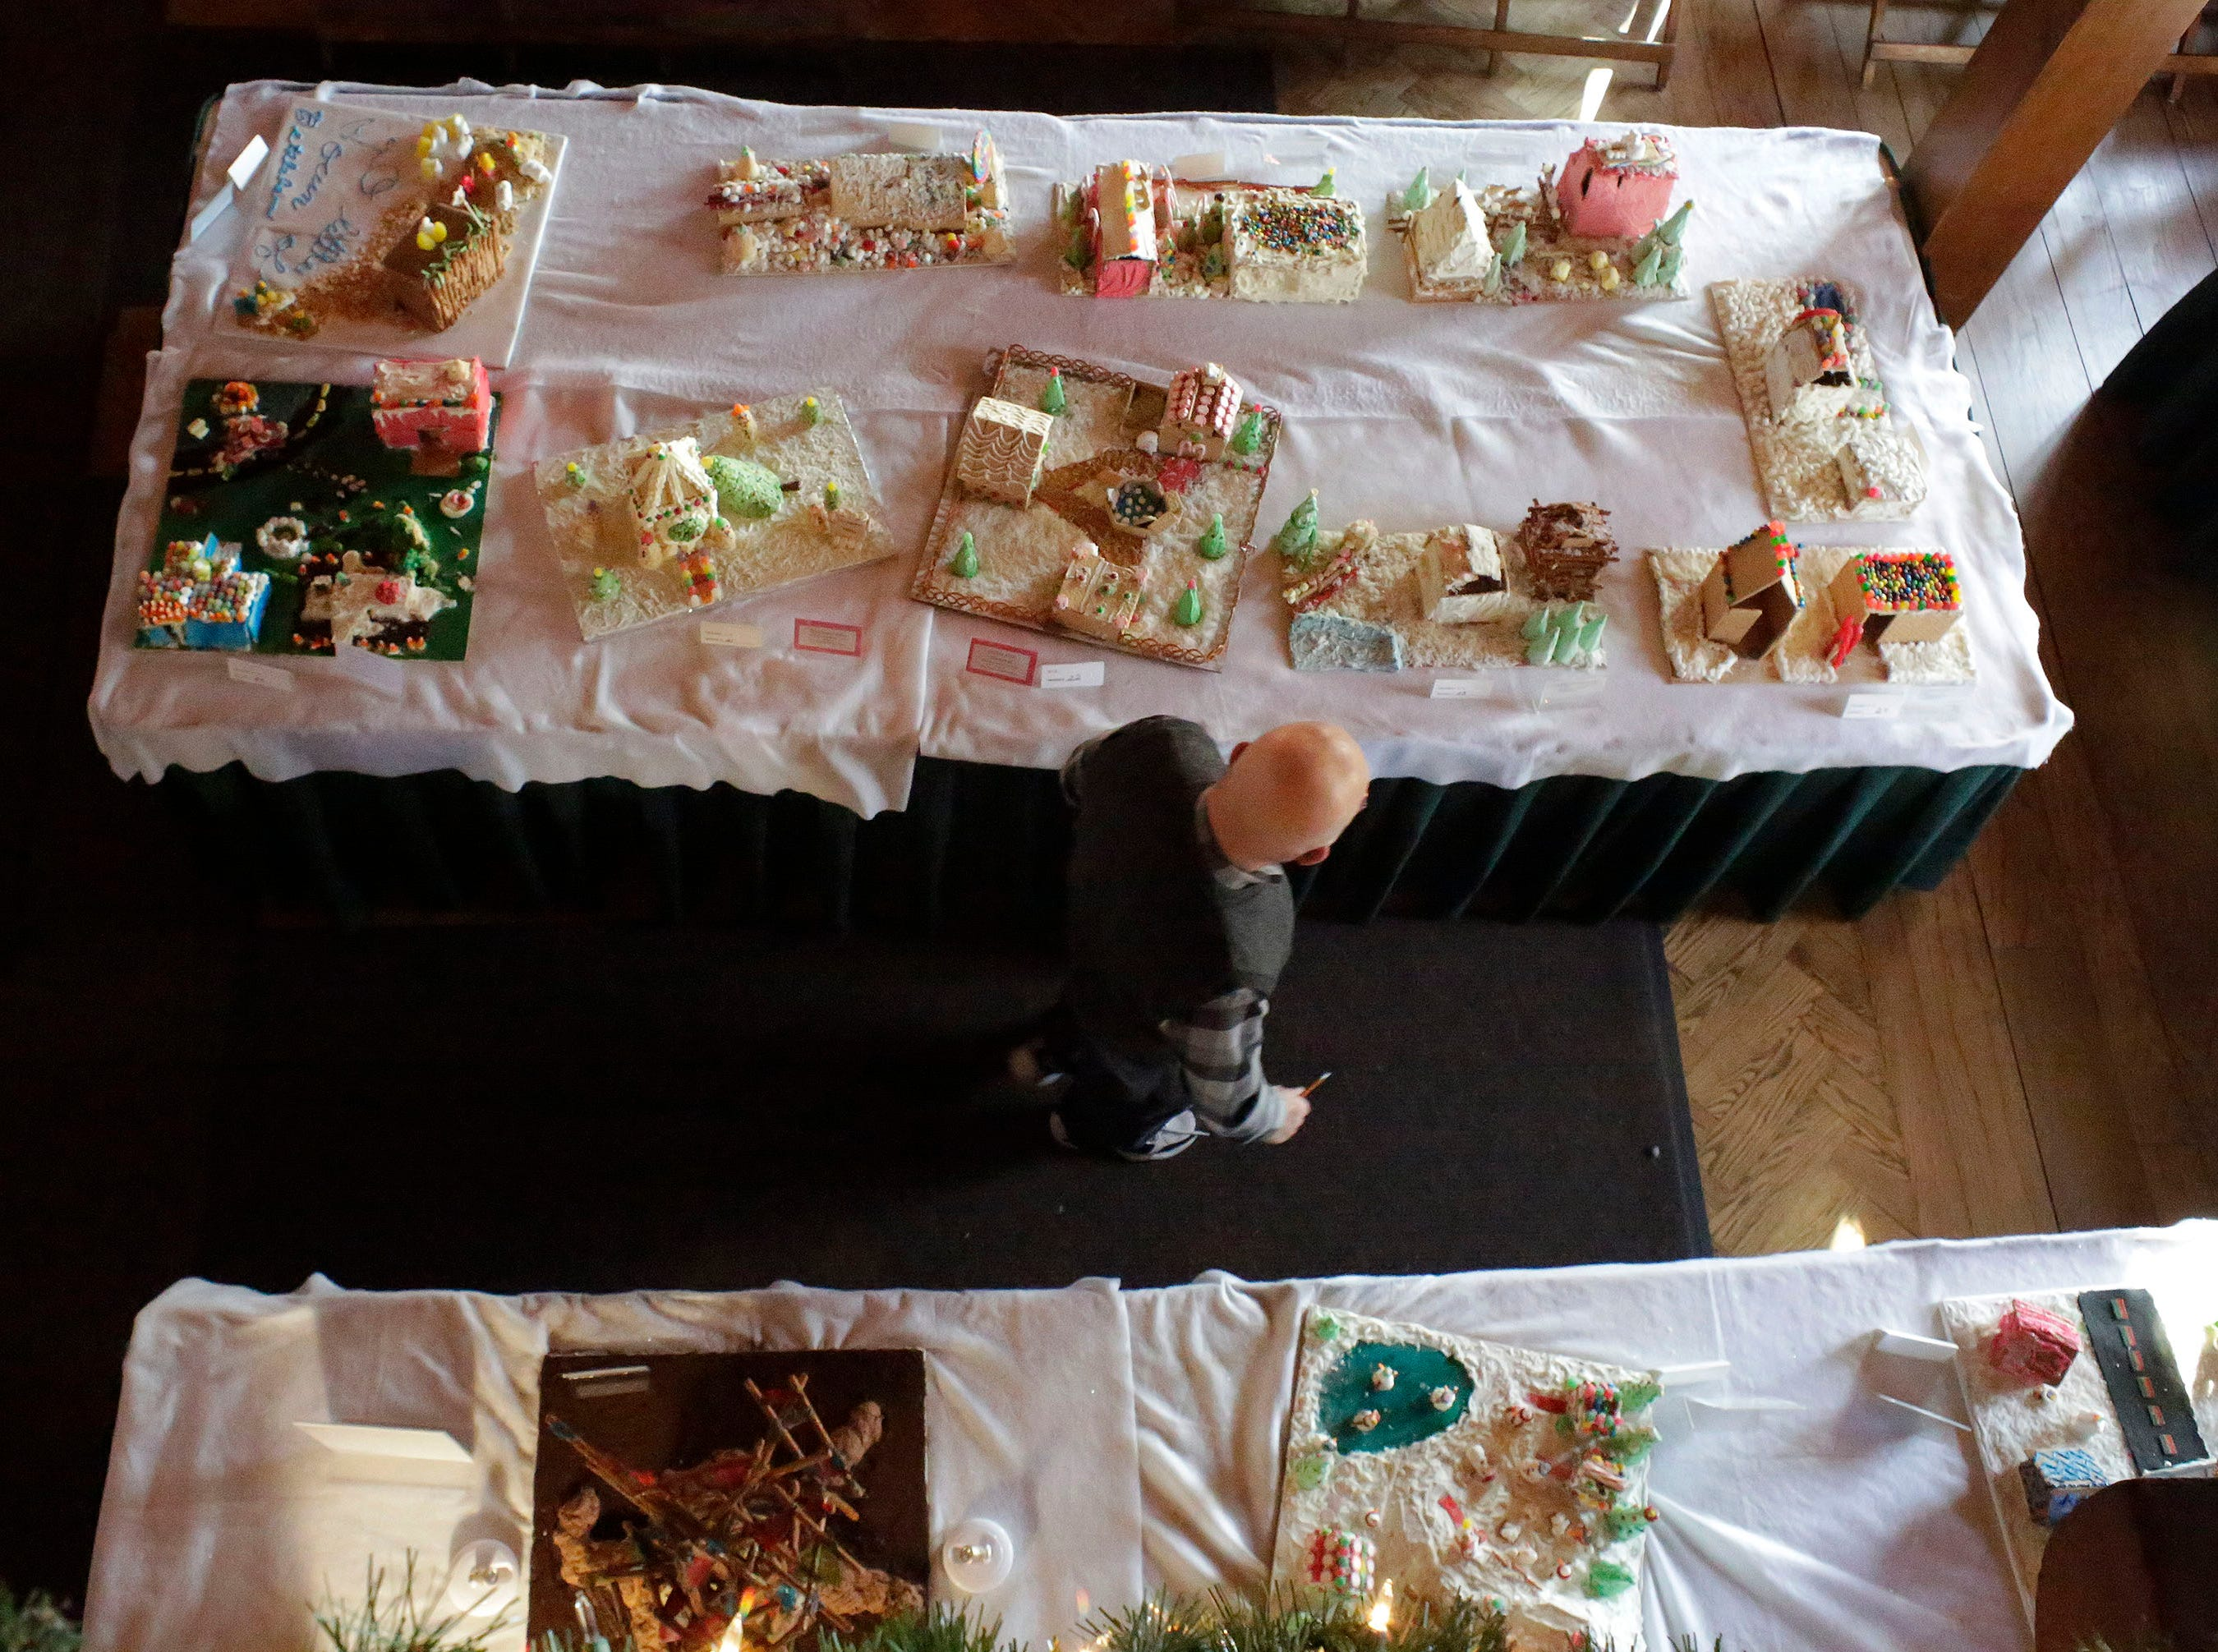 A man inspects gingerbreads at the annual Waelderhaus Gingerbread Festival, Saturday, December 8, 2018, in Kohler, Wis.